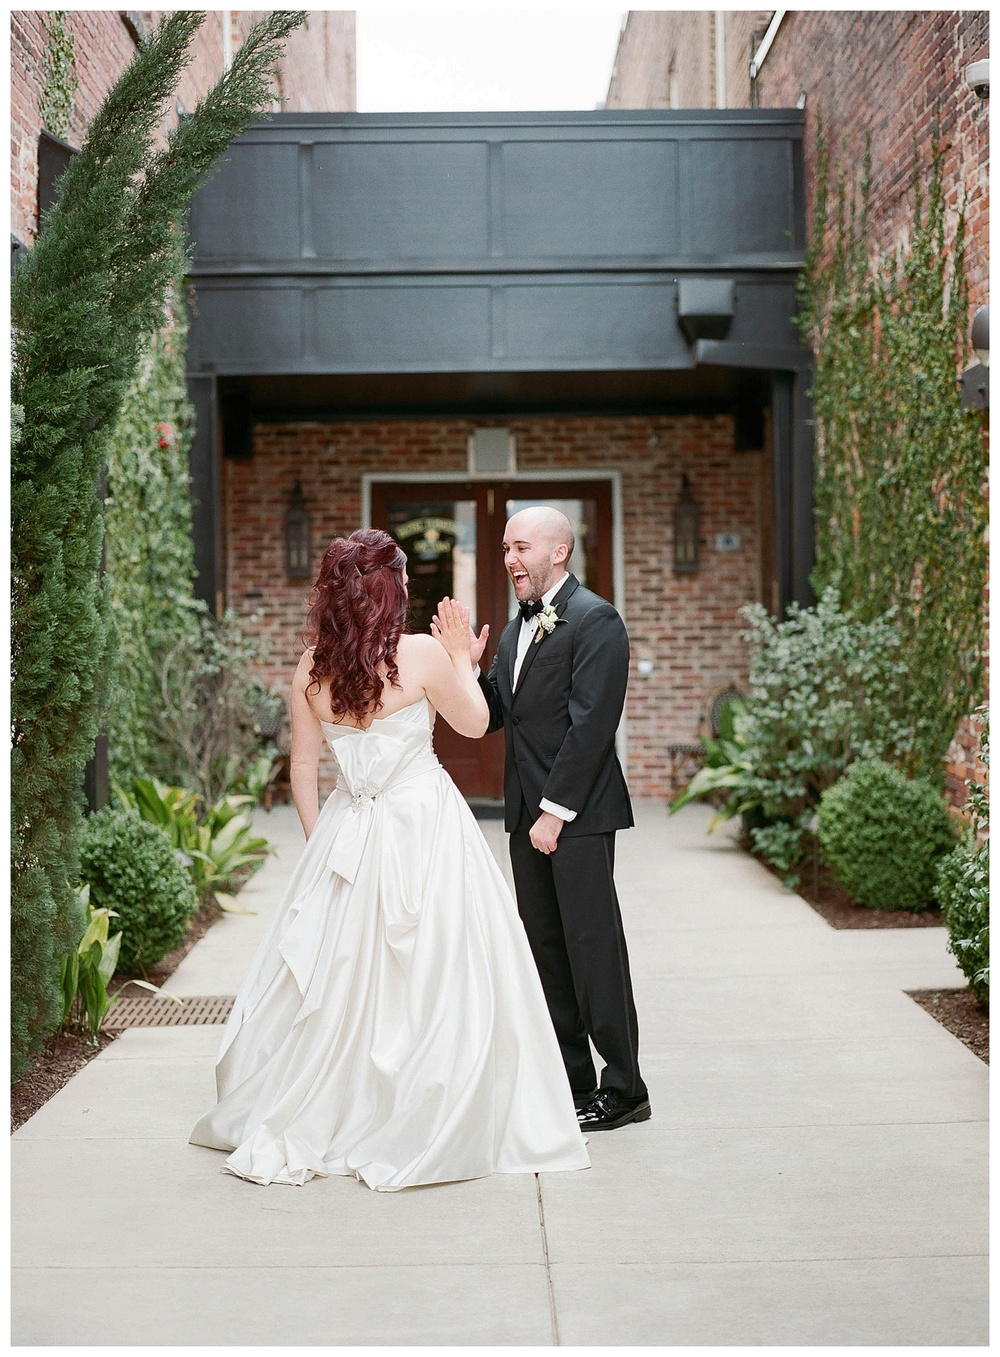 couple high-five in photo for wedding at Hotel Florence, SC